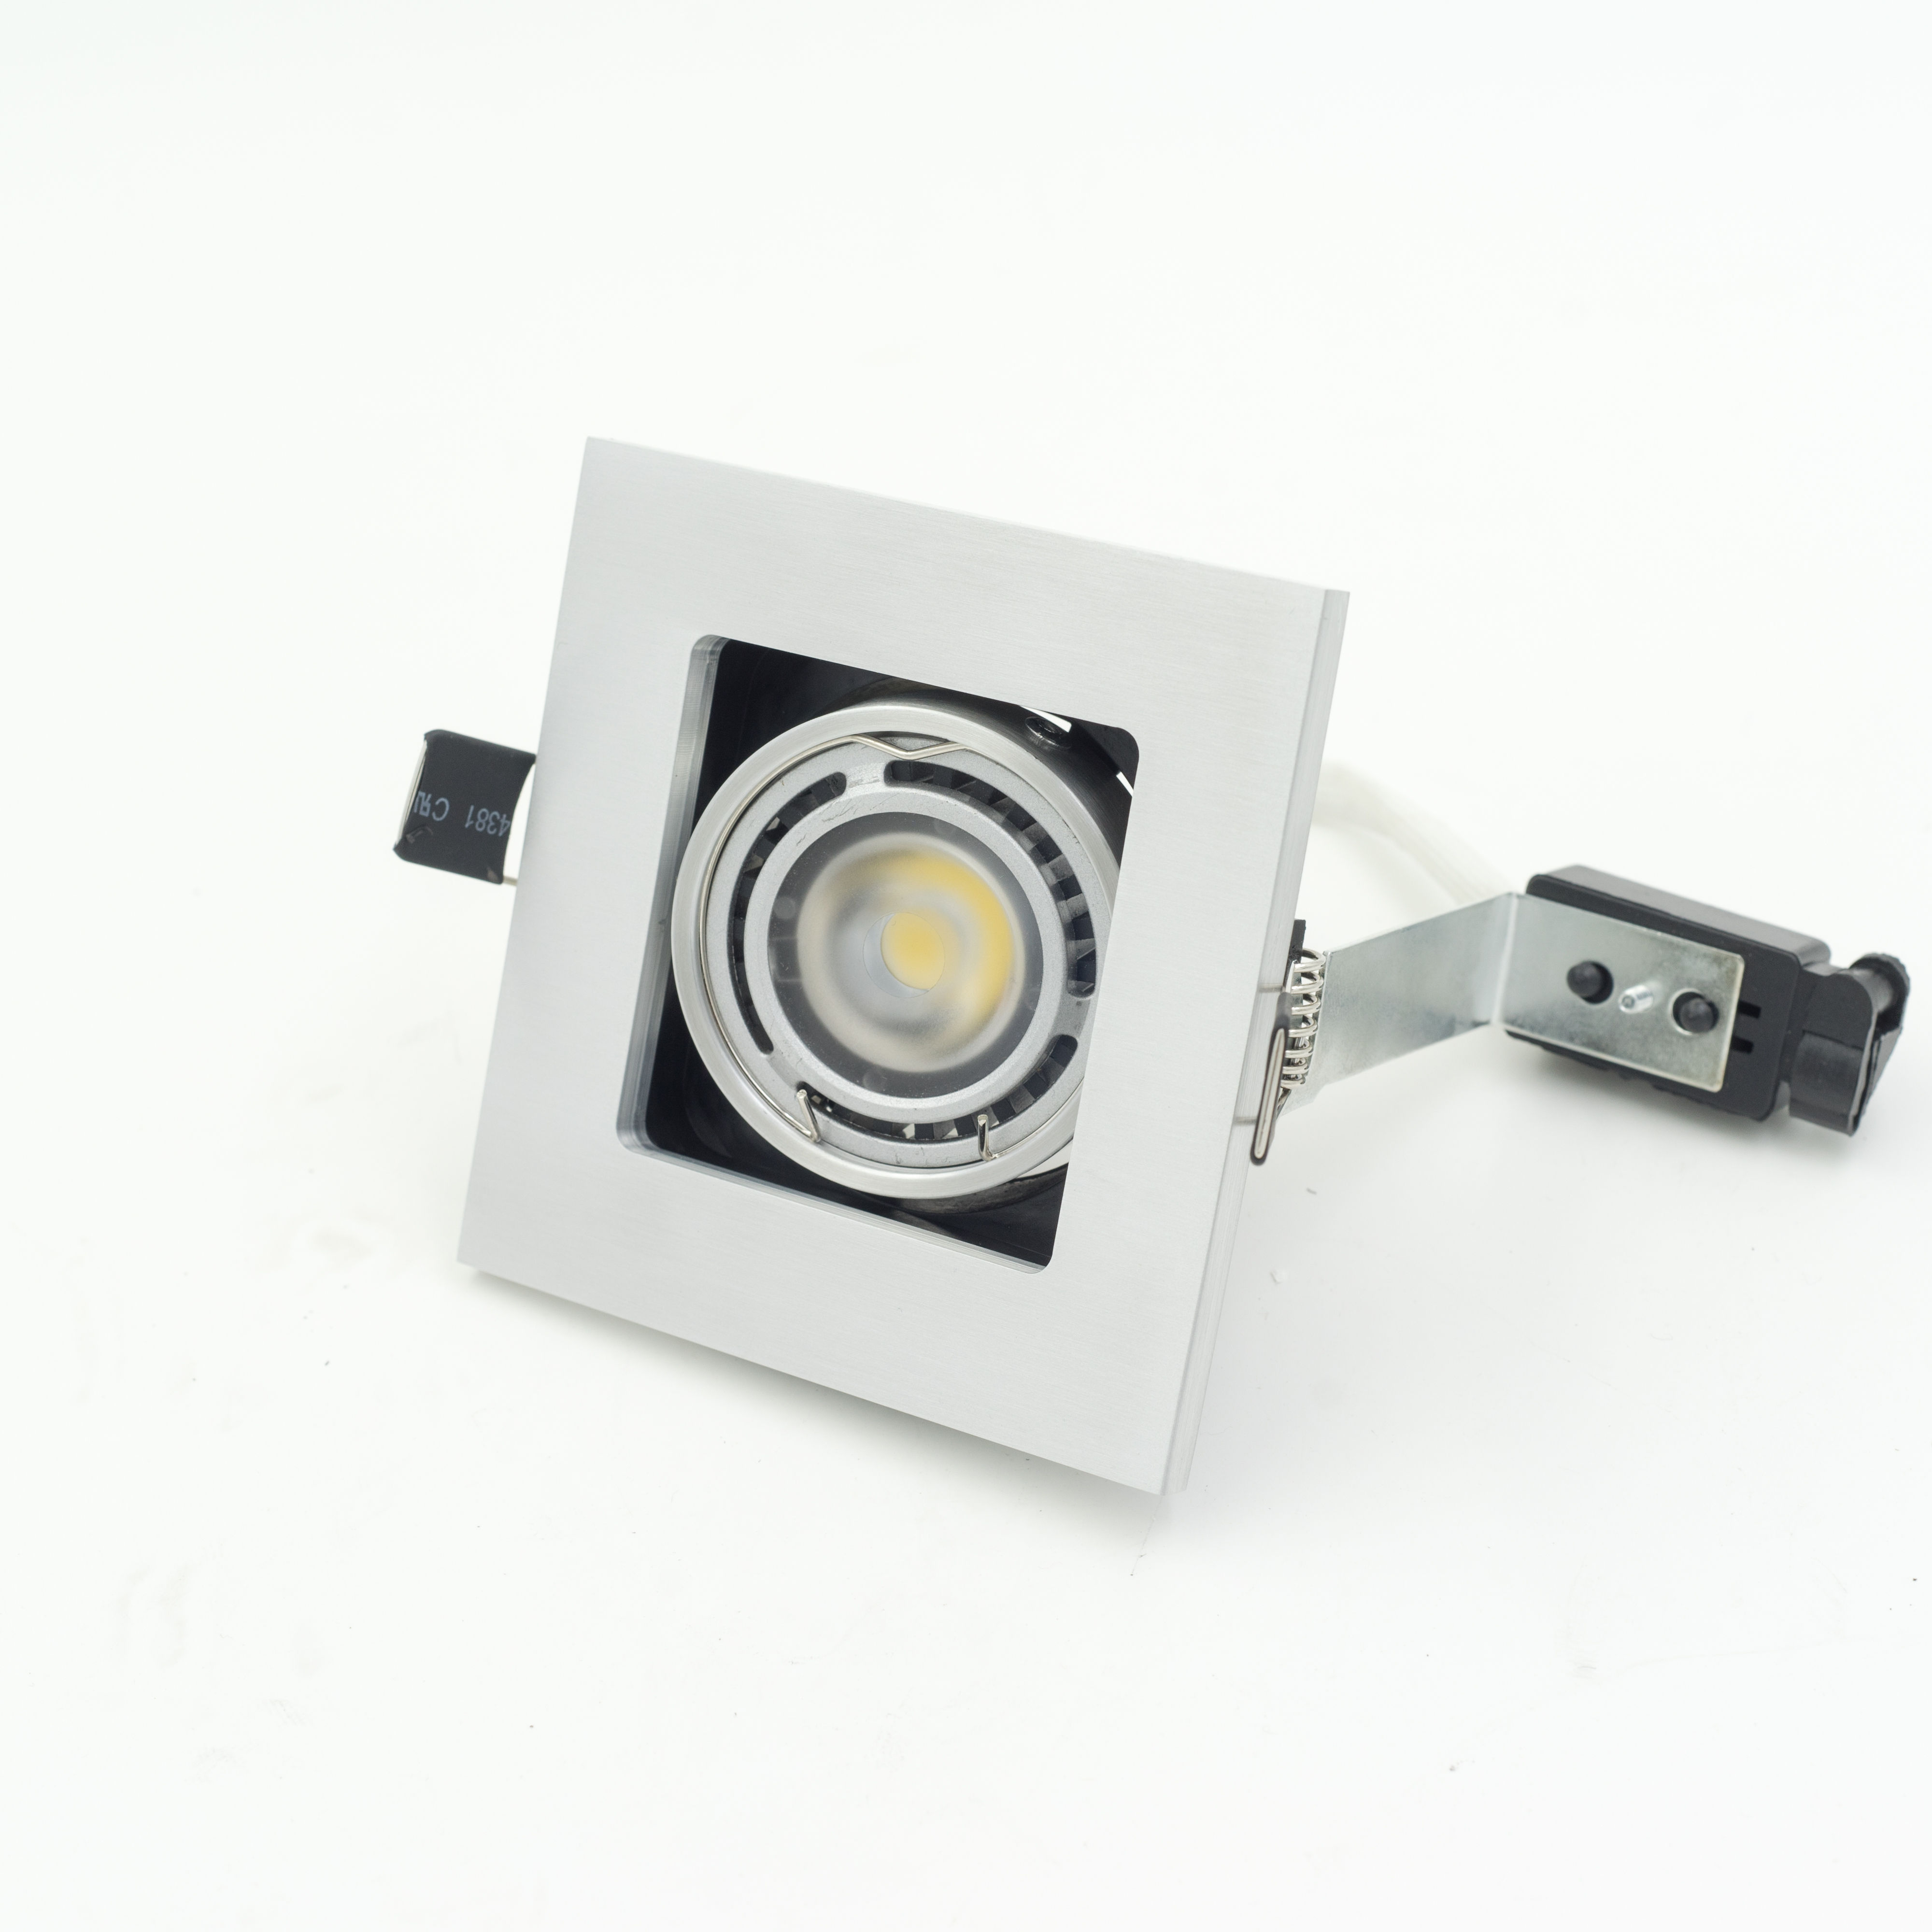 Hot Product LED Downlight Square Embedded COB Grille LED Light Adjustable In Vertical Square Down Light